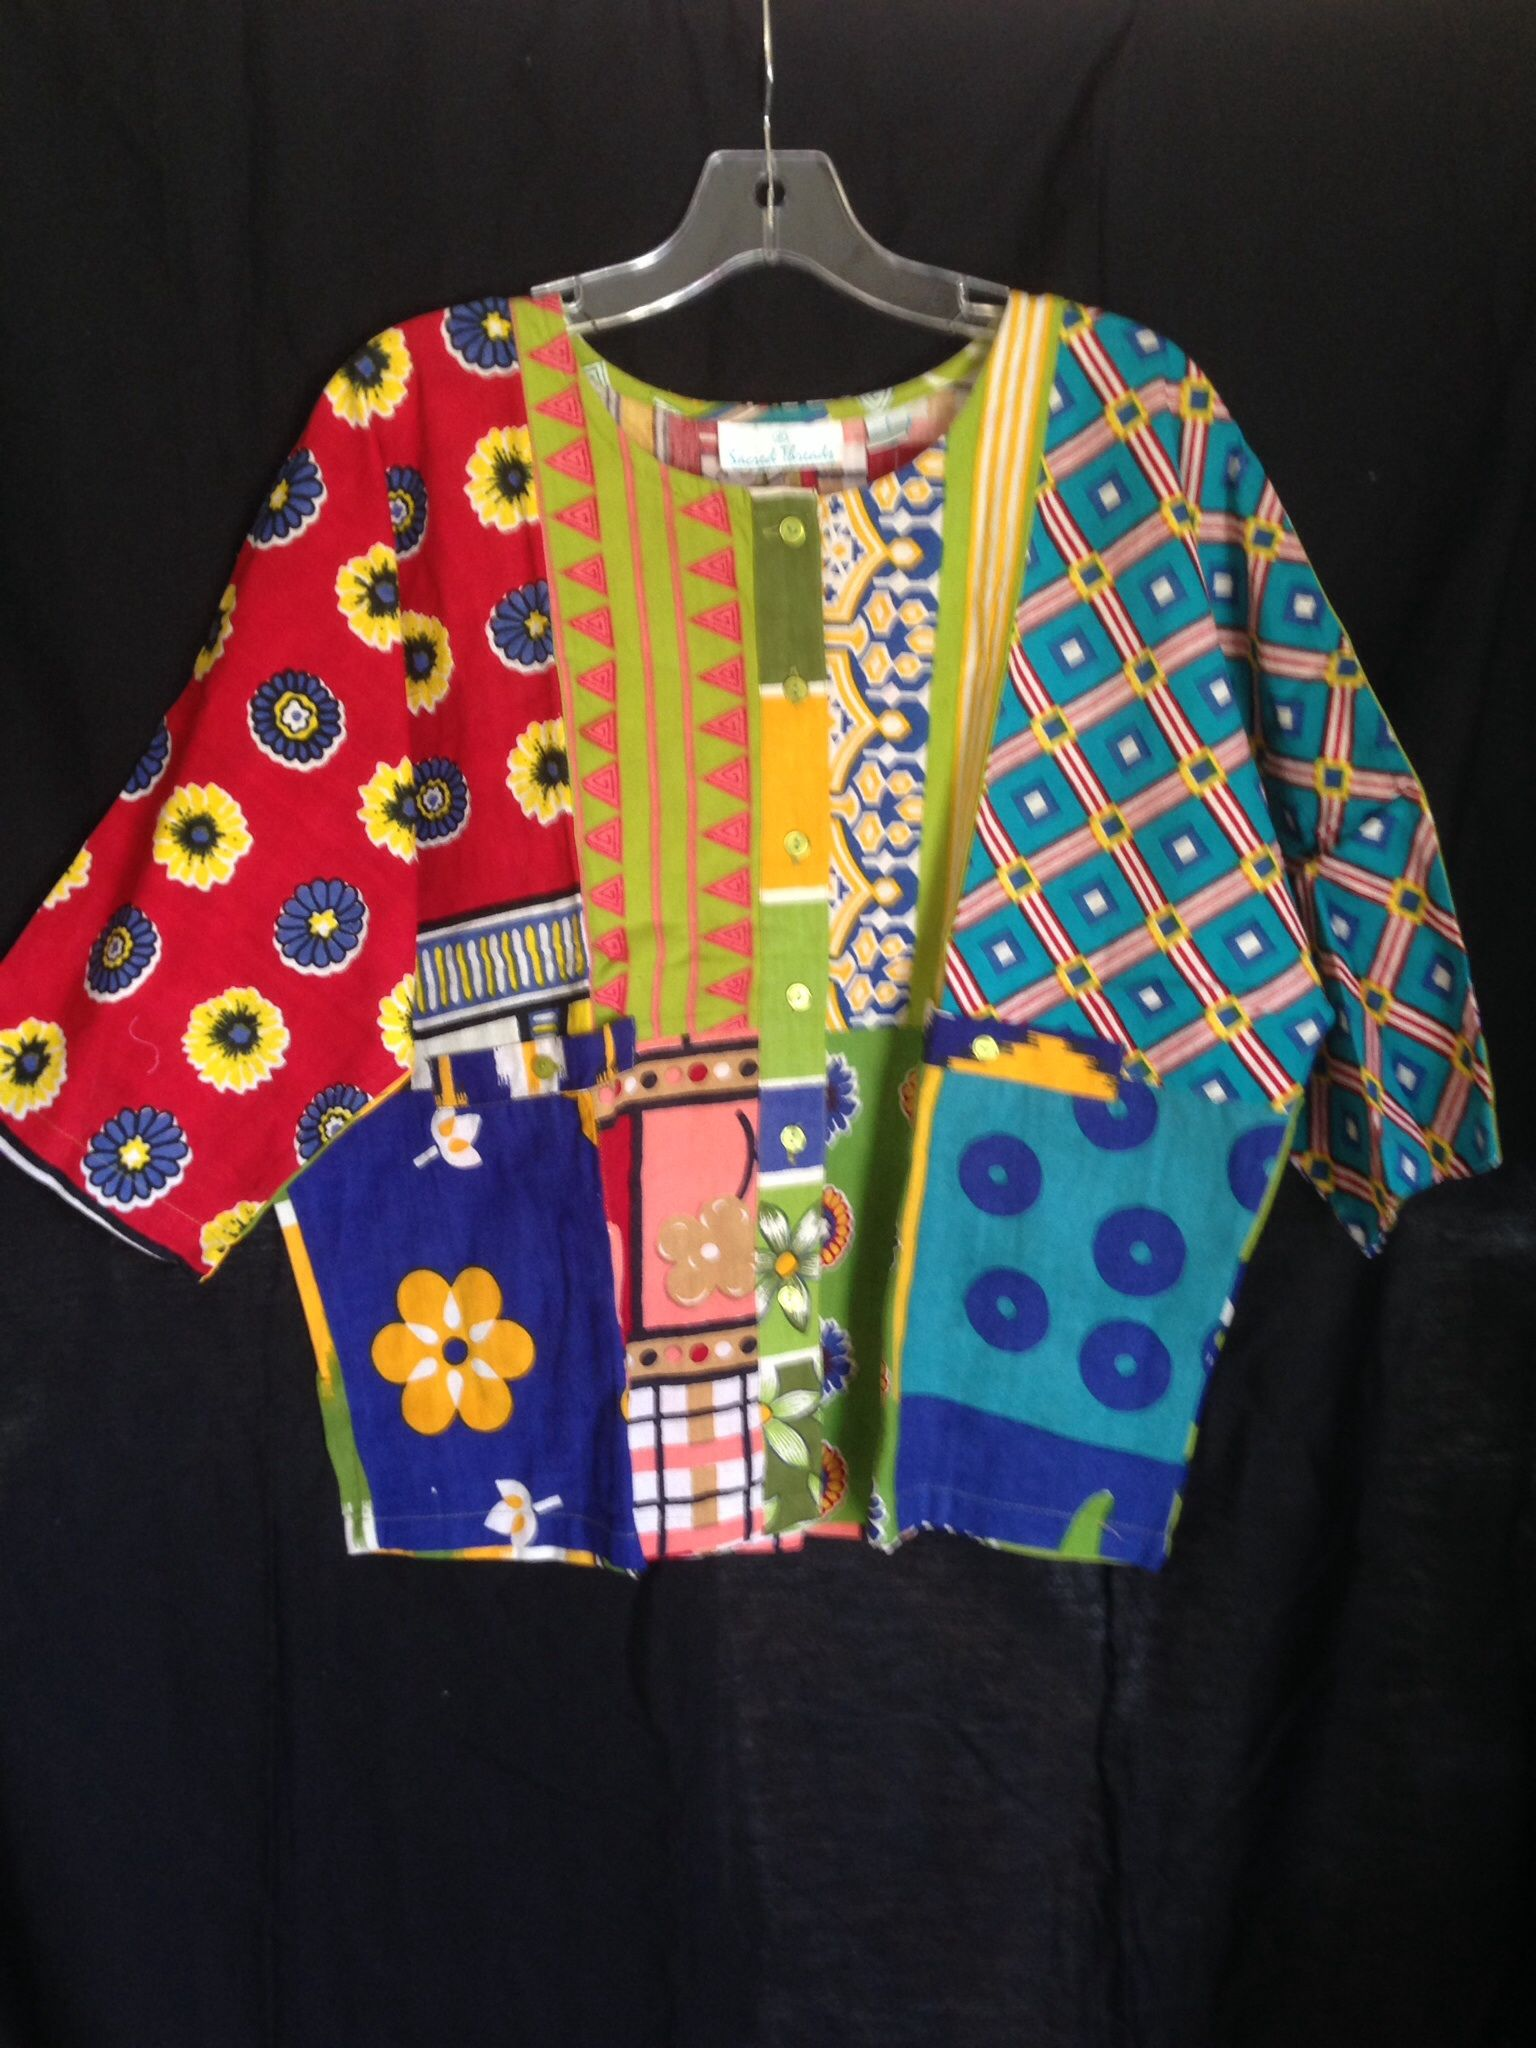 Colorful Cotton top was $39.95 and now $9.98 at OFF Fourth Outlet Store.